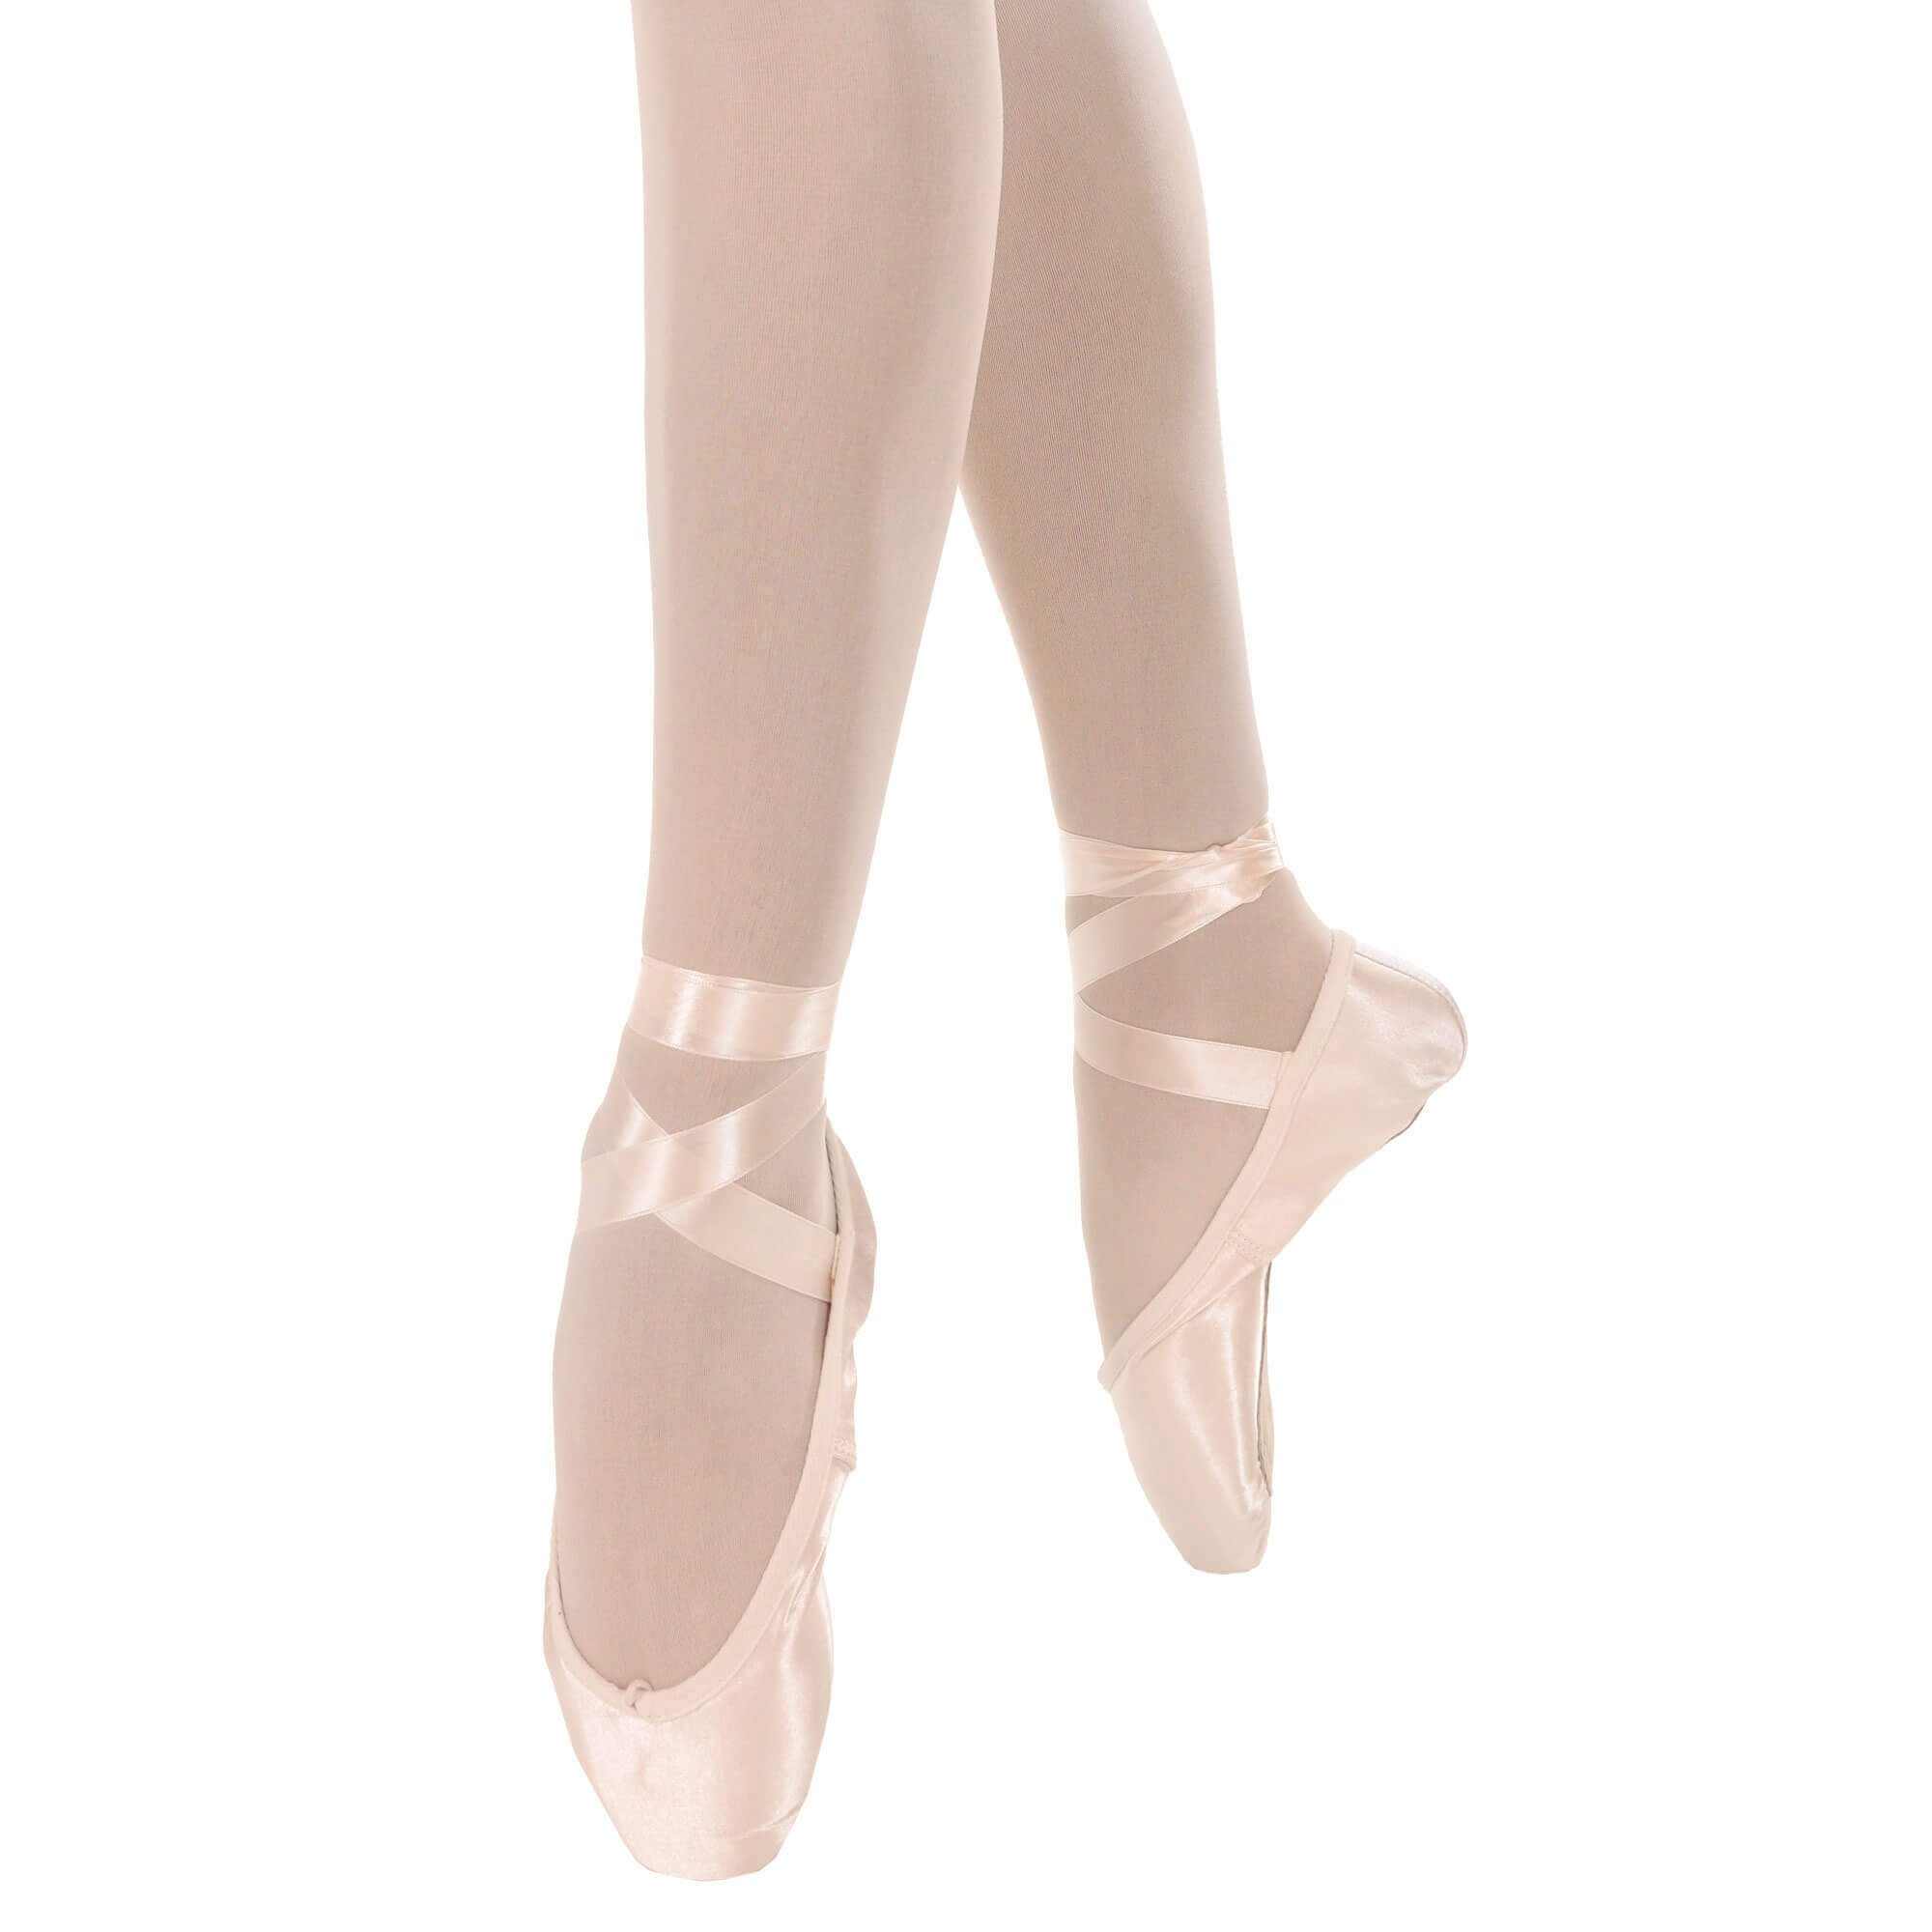 Danzcue Womens Flexiable Soft Shank Pointe Shoes With Ribbon